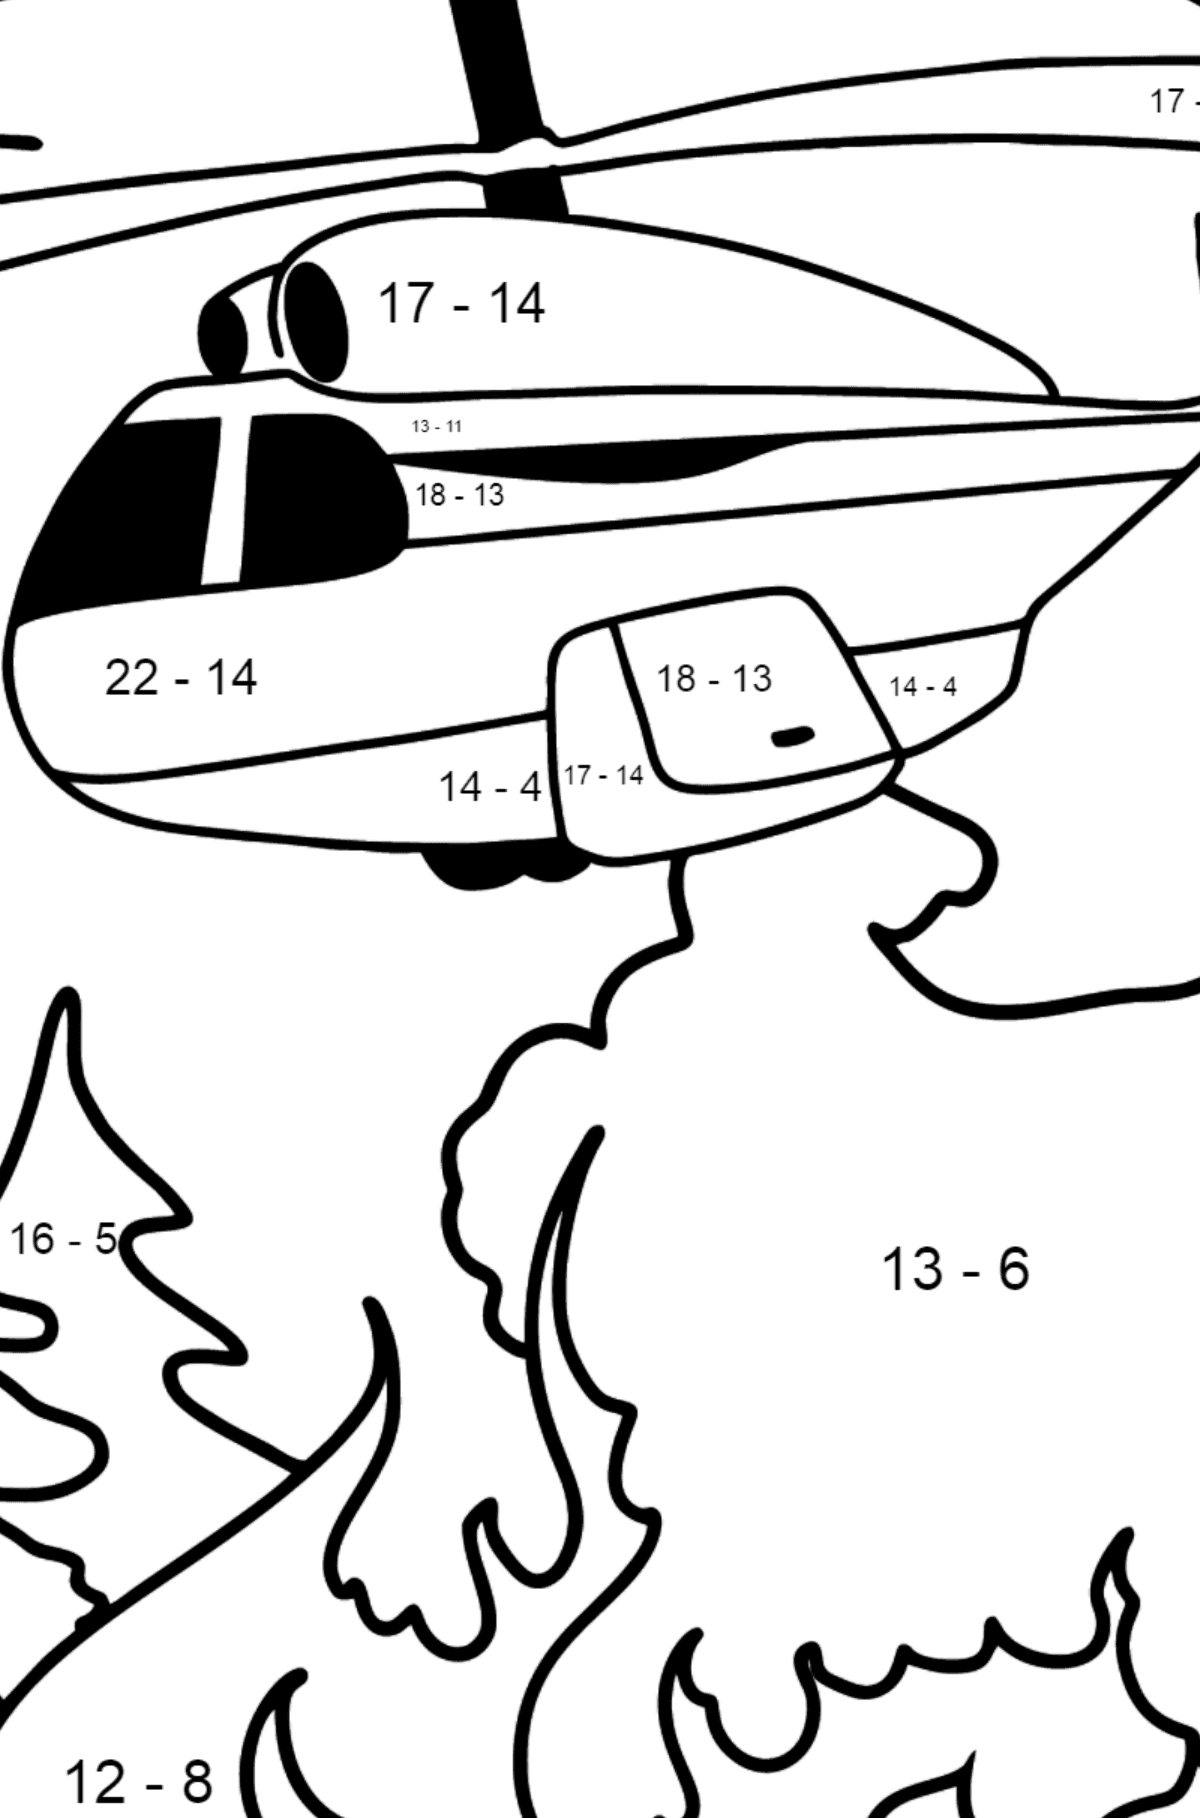 Helicopter Extinguishing Fire coloring page - Math Coloring - Subtraction for Kids